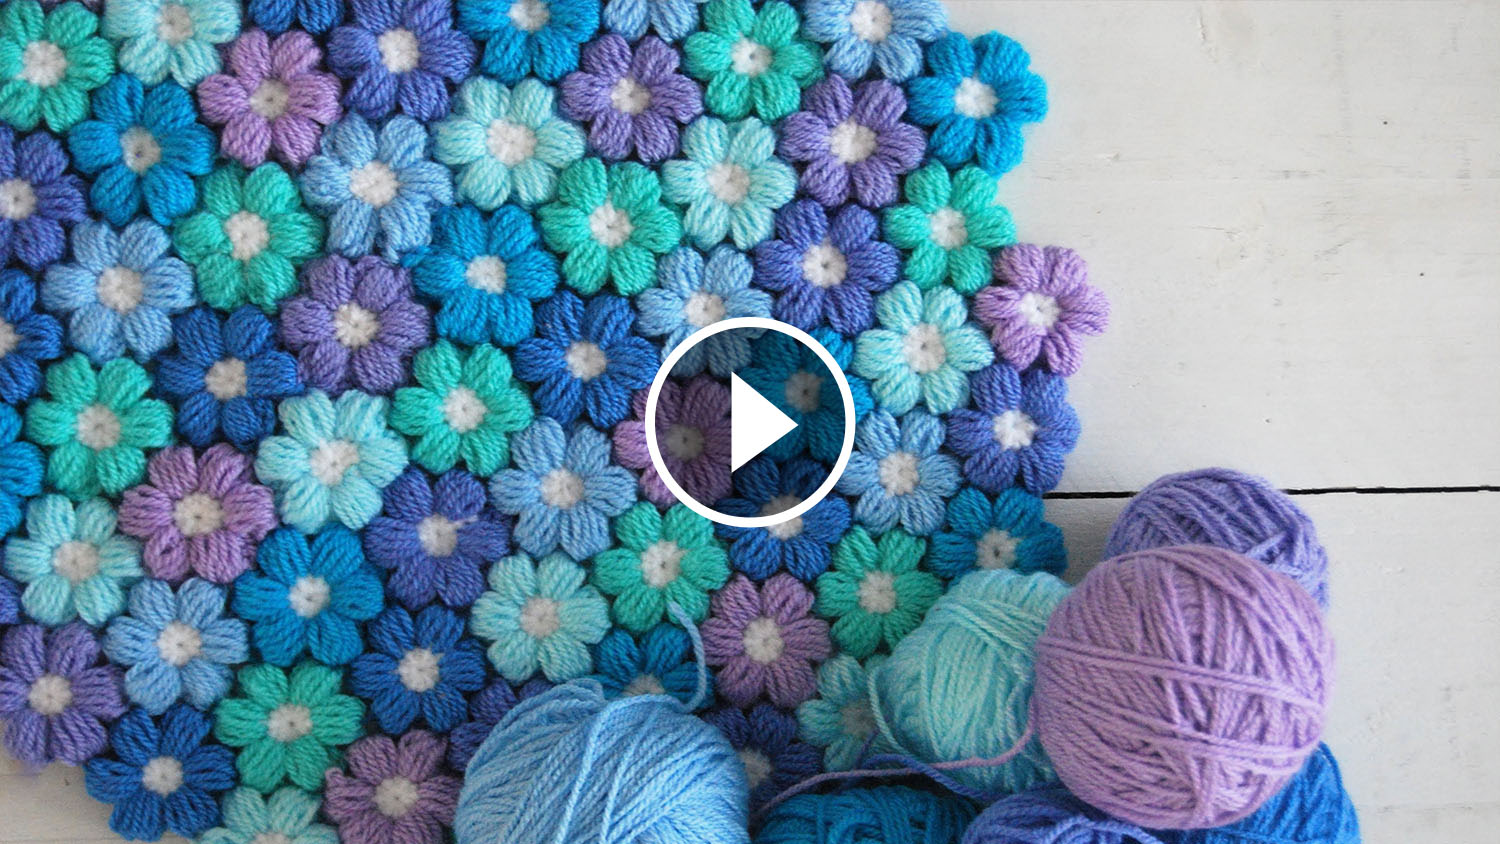 Crochet Flower Puff Pattern : Joined Puff Crochet Flowers Tutorial CrochetBeja